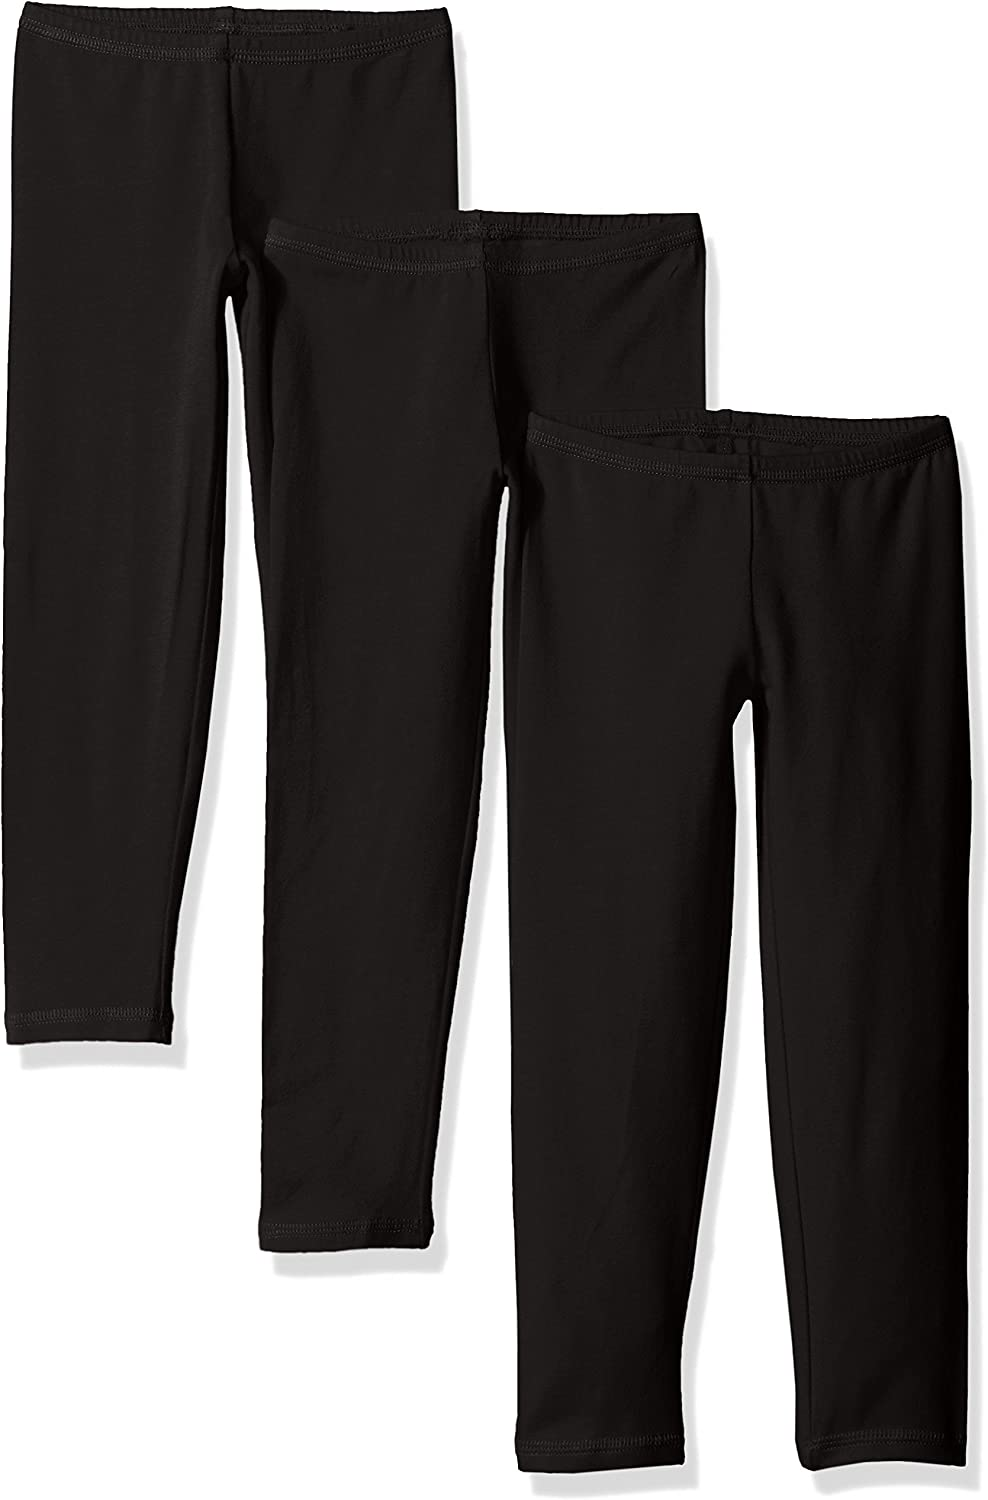 Hanes Little Girls' Leggings (Pack of 3): Clothing